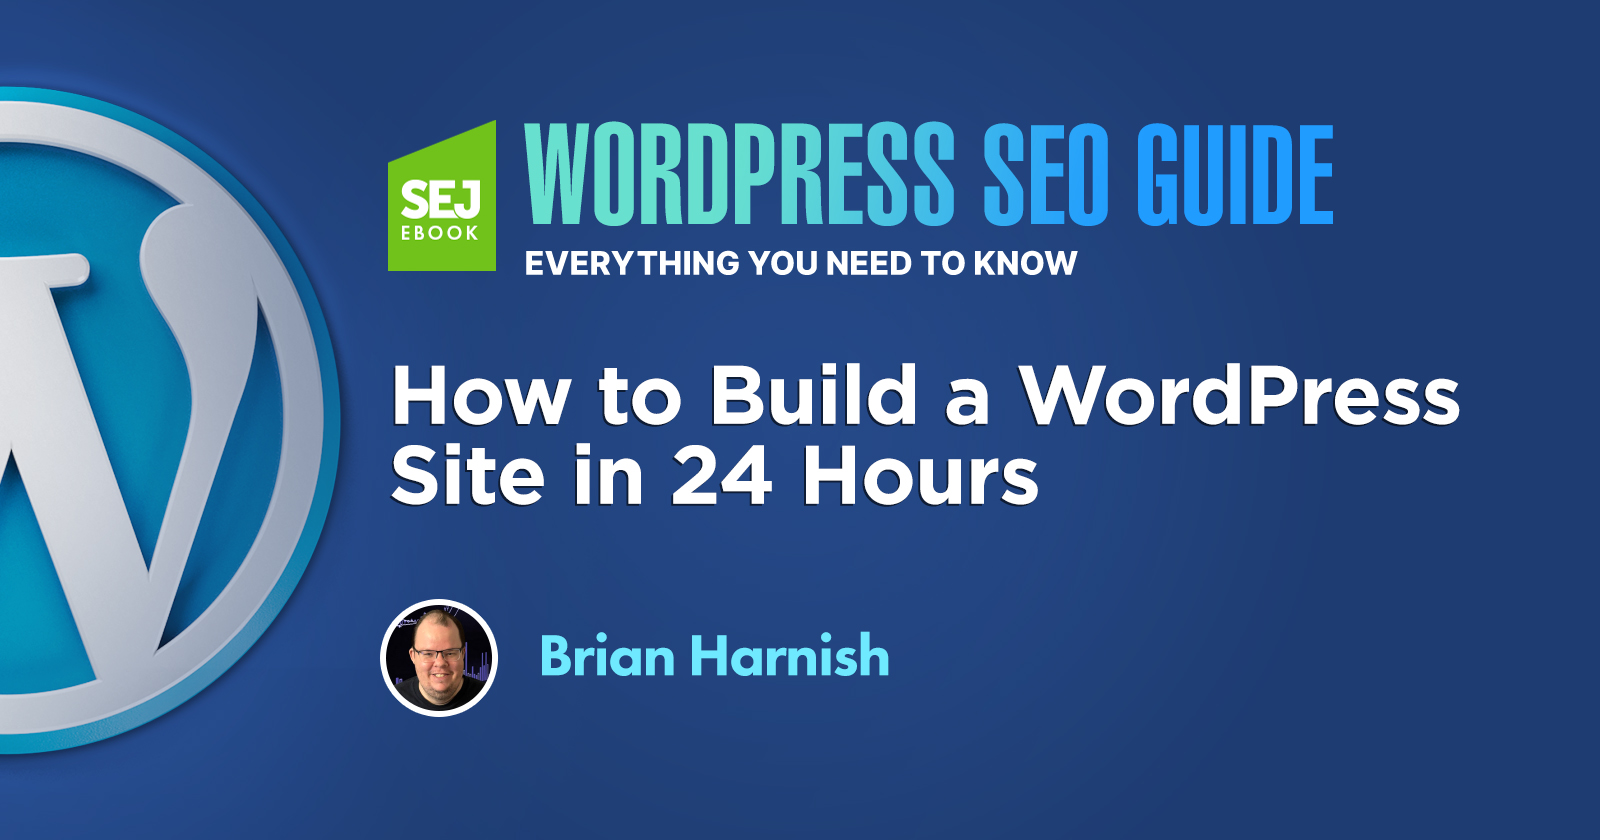 Previous ChapterHow to Build a WordPress Site in 24 Hours - Search Engine Journal